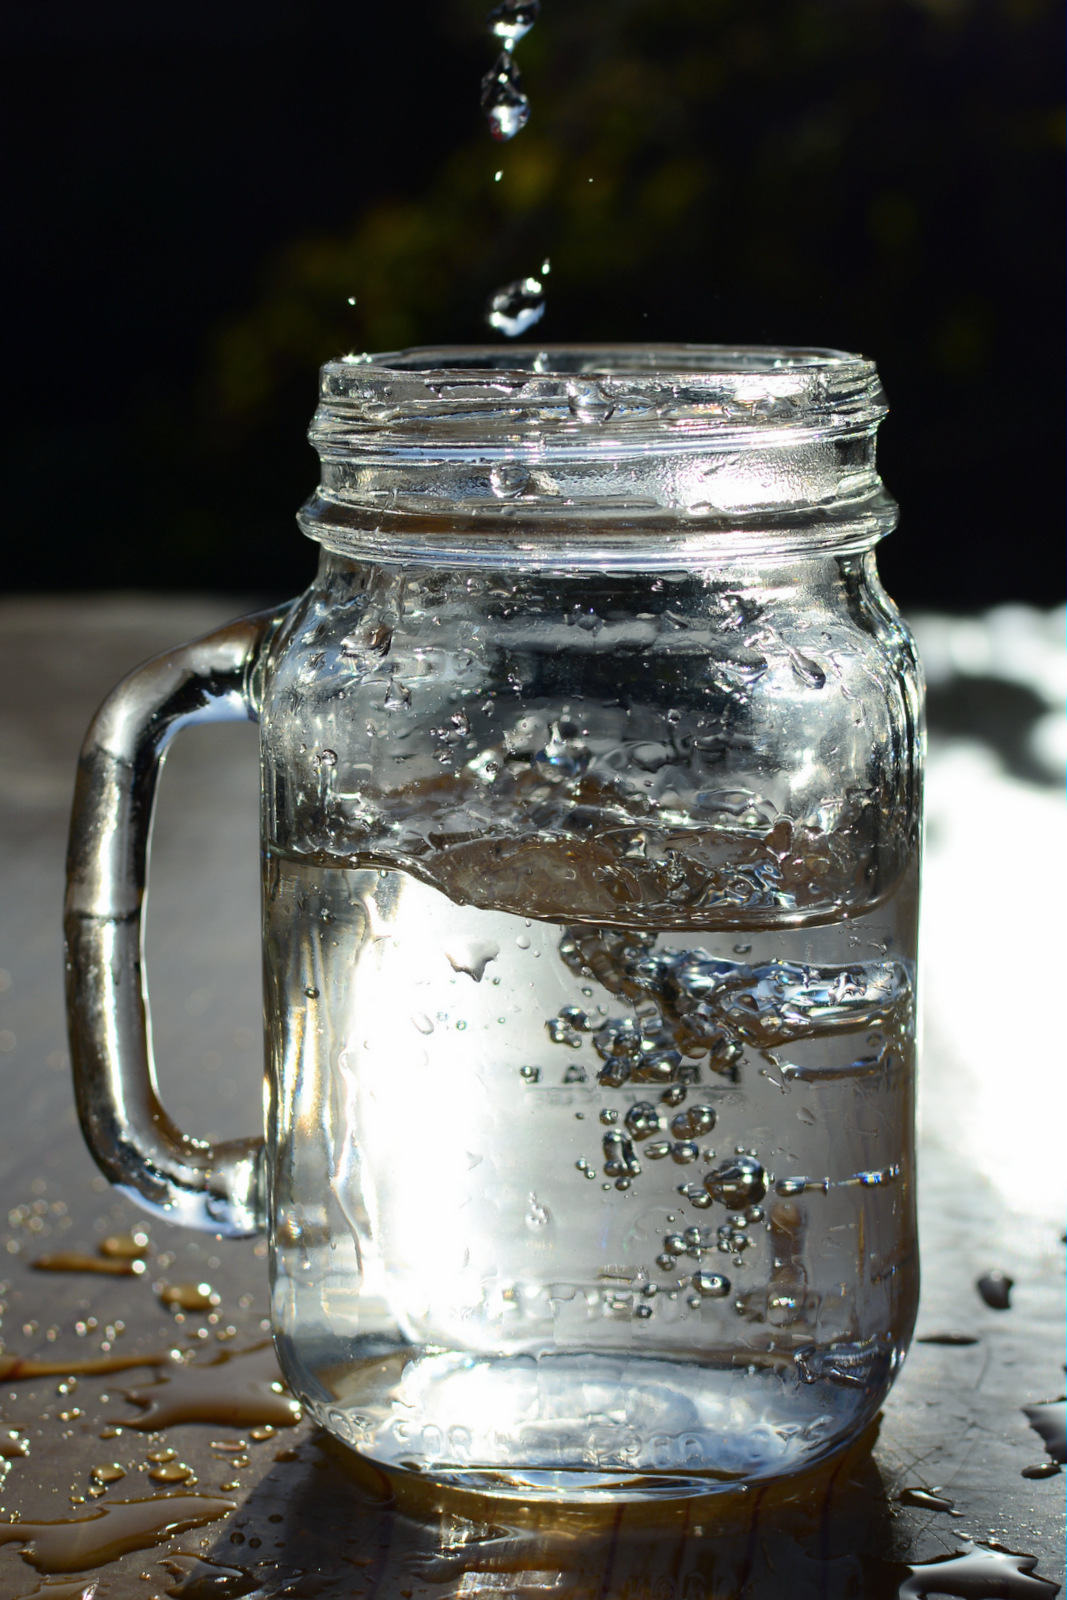 Have a Headache? You Might Not Be Drinking Enough Water